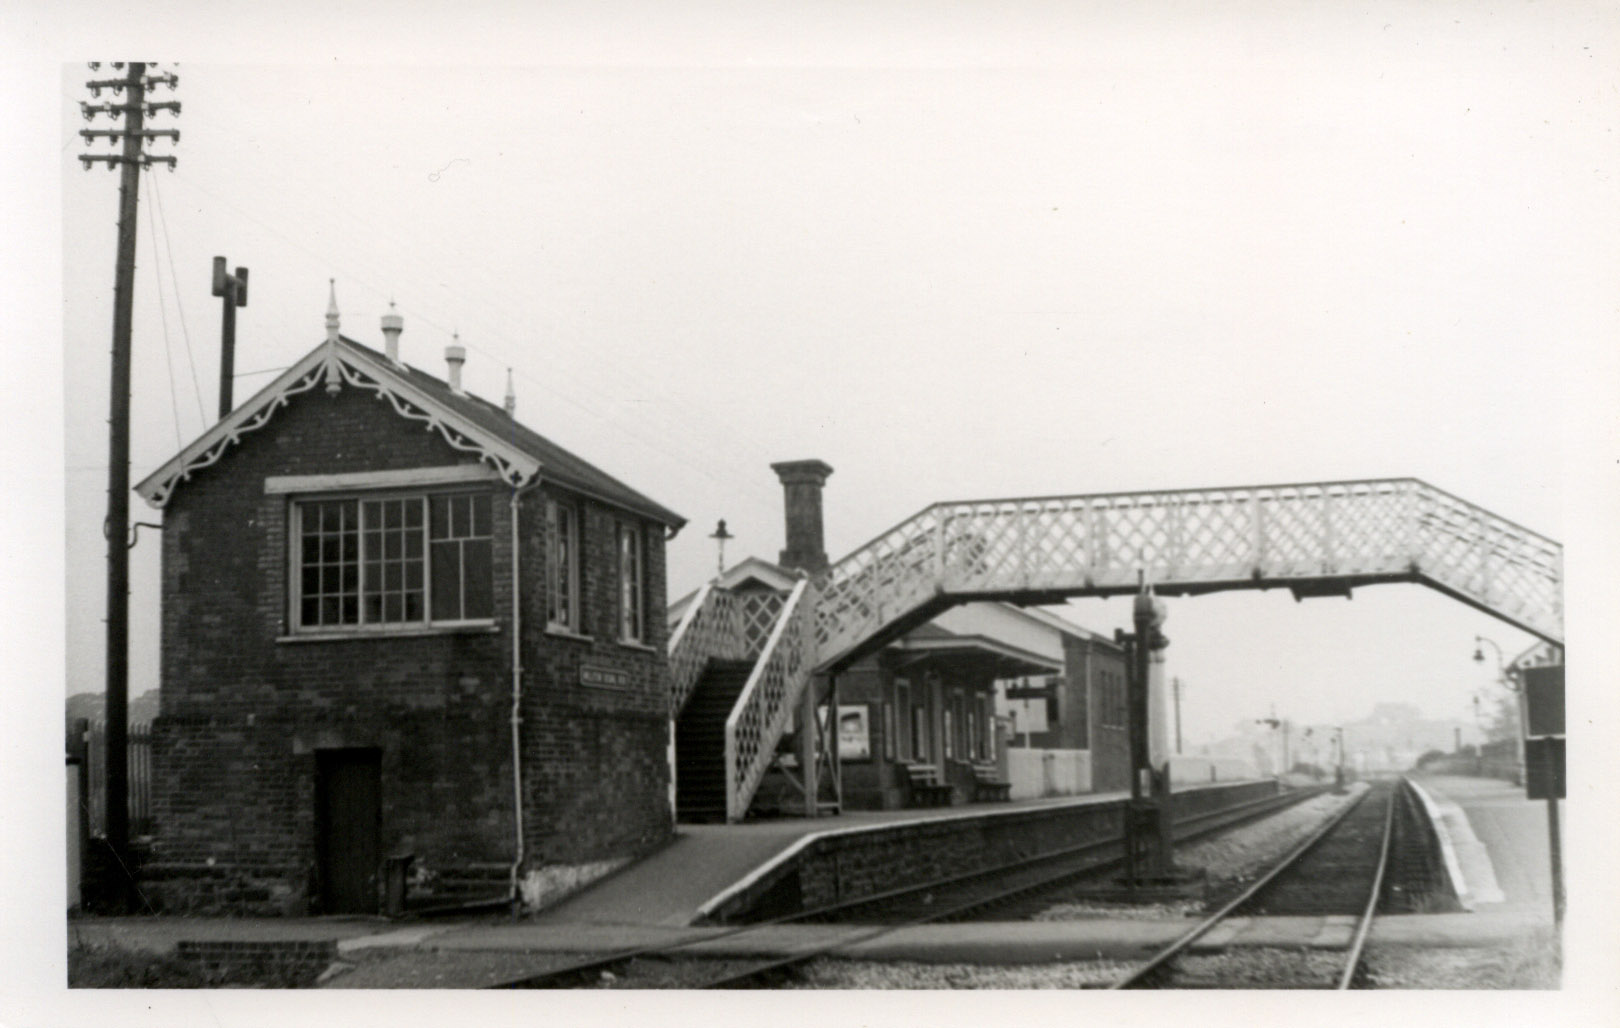 1966 - Williton Station ©The John Alsop Collection